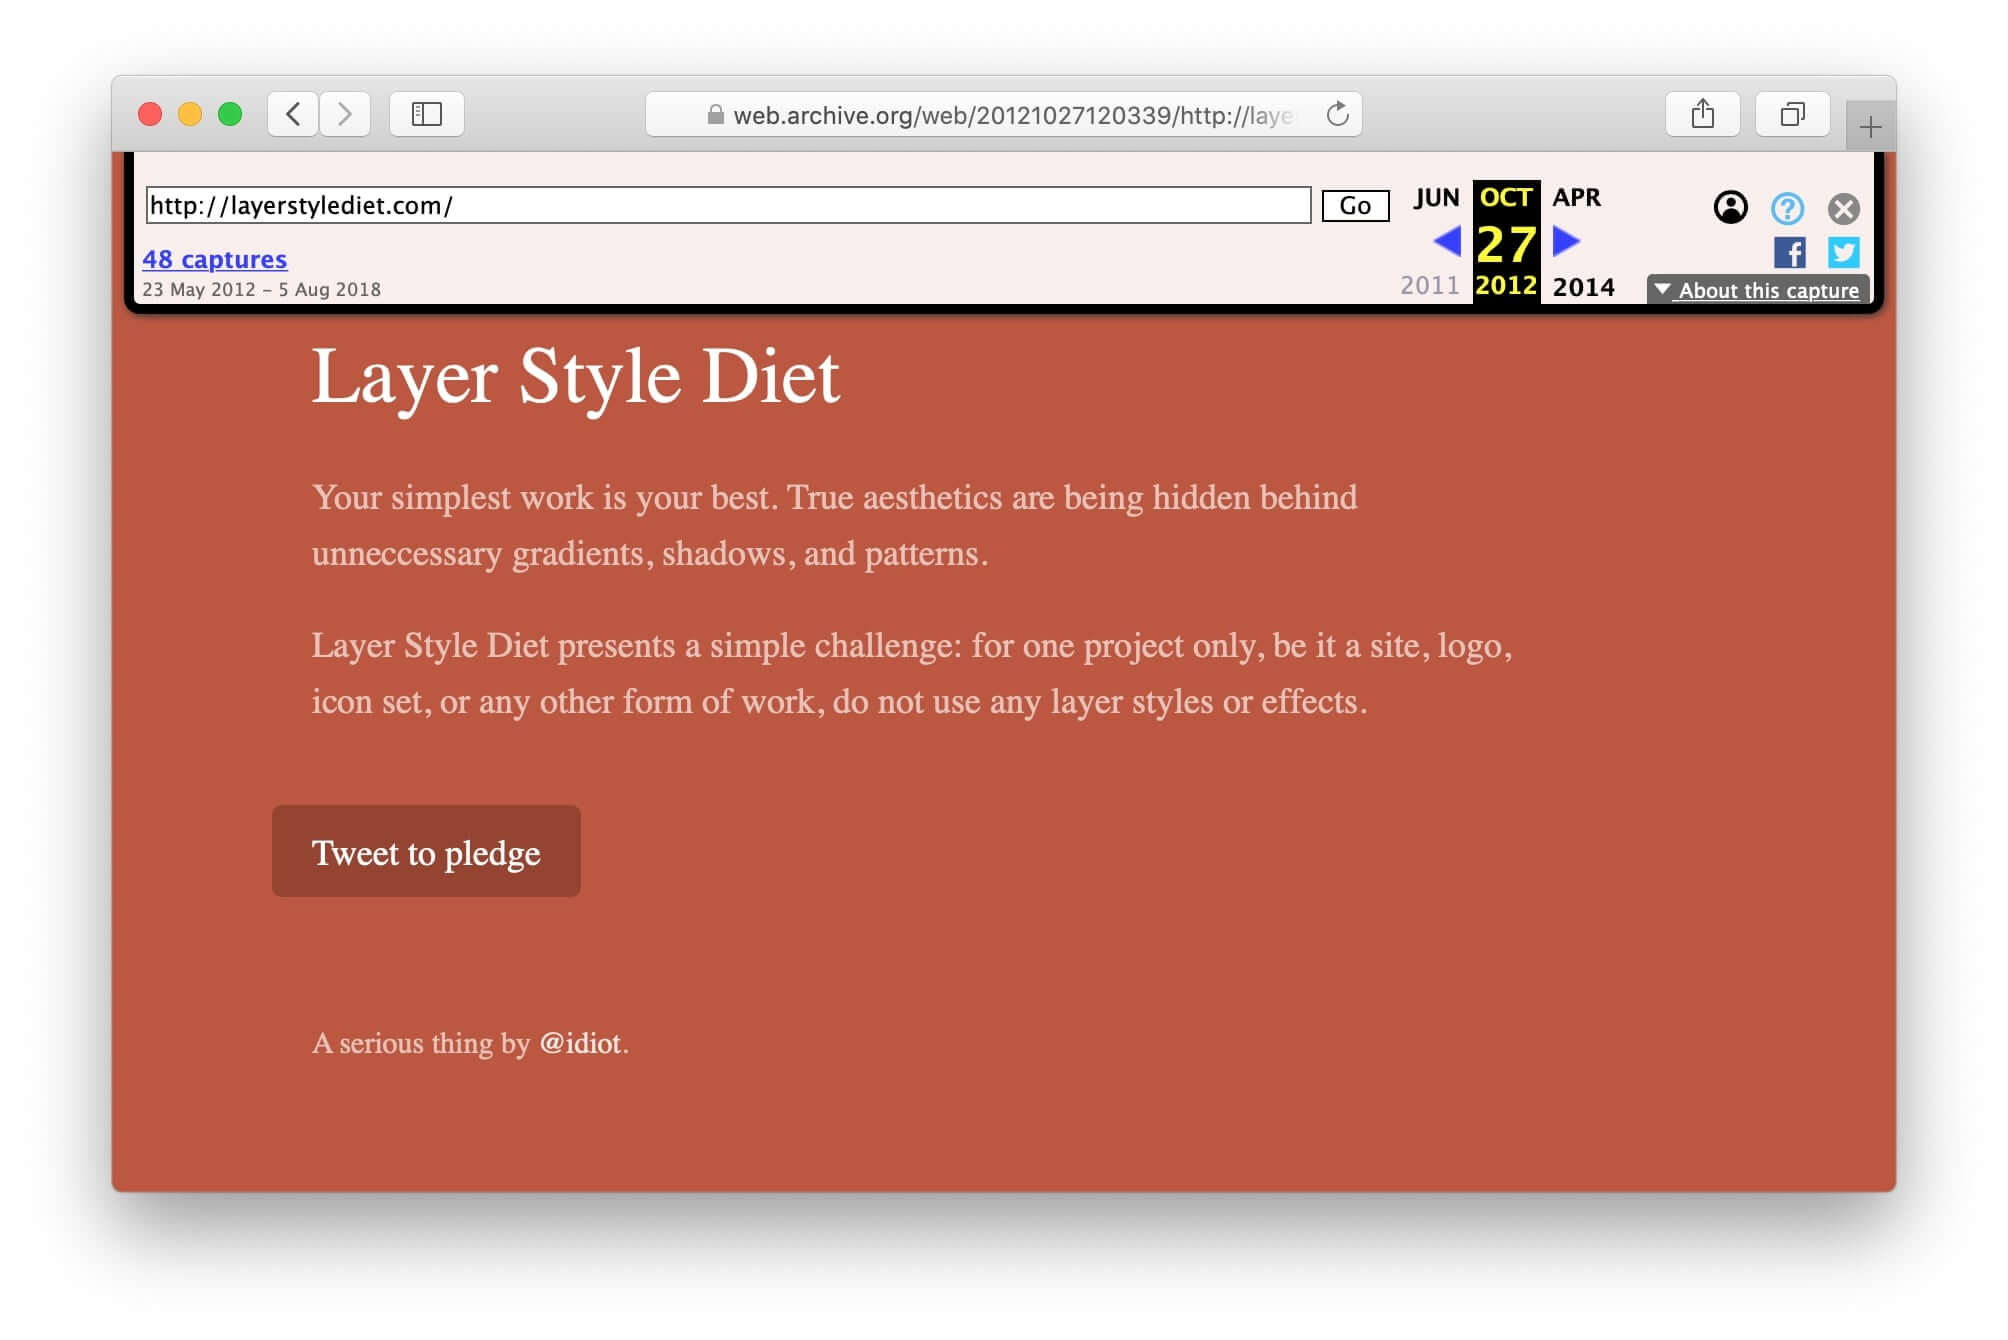 Screenshot of the layer style diet webpage